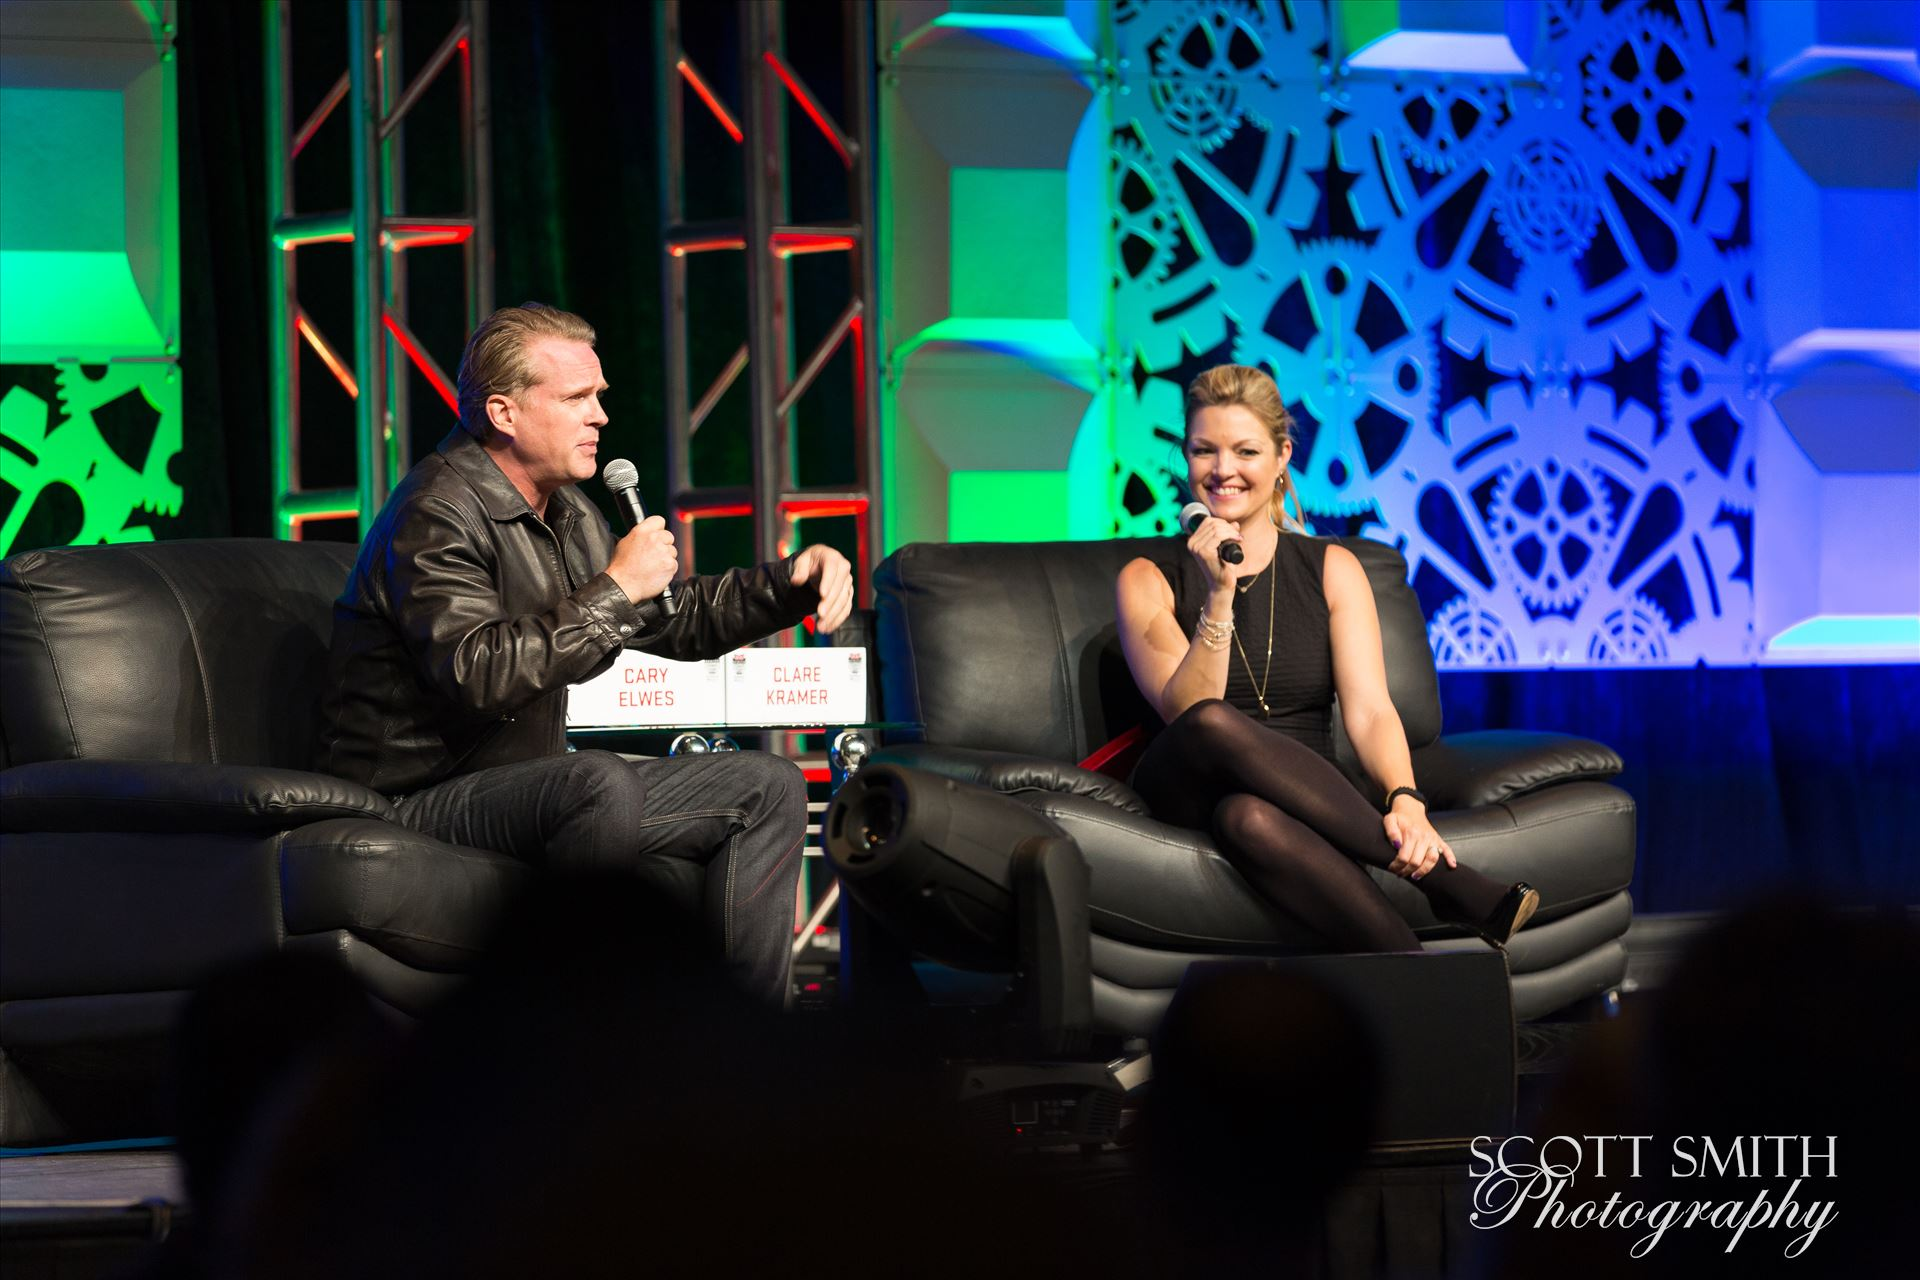 Denver Comic Con 2016 26 - Denver Comic Con 2016 at the Colorado Convention Center. Clare Kramer and Cary Elwes. by D Scott Smith